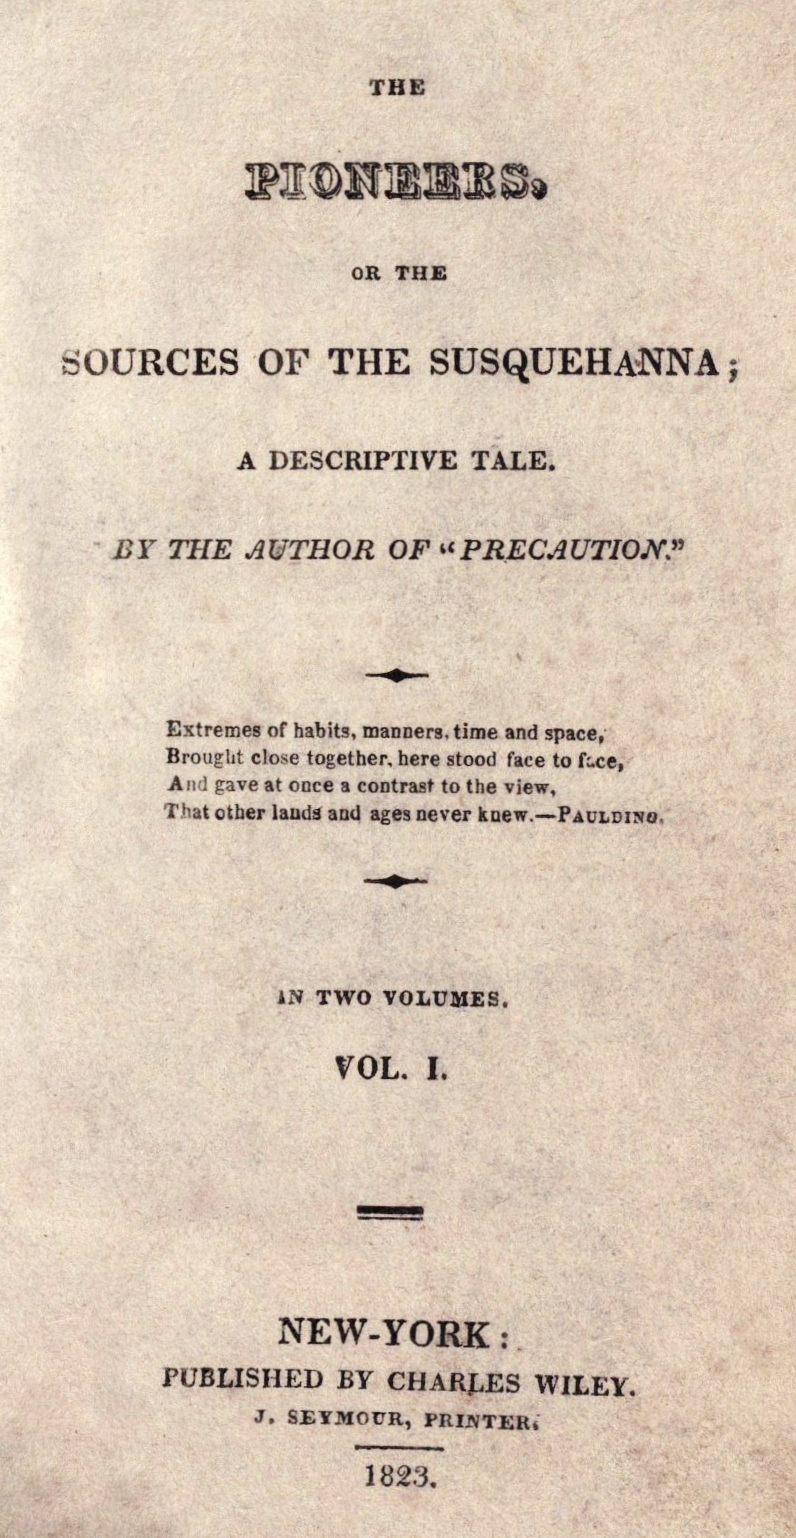 an analysis of the novel the last of the mohicans by james fenimore cooper Guide to the last of the mohicans (1826) by james fenimore cooper (1789- 1851)  from european romanticism and translated them into american themes, .